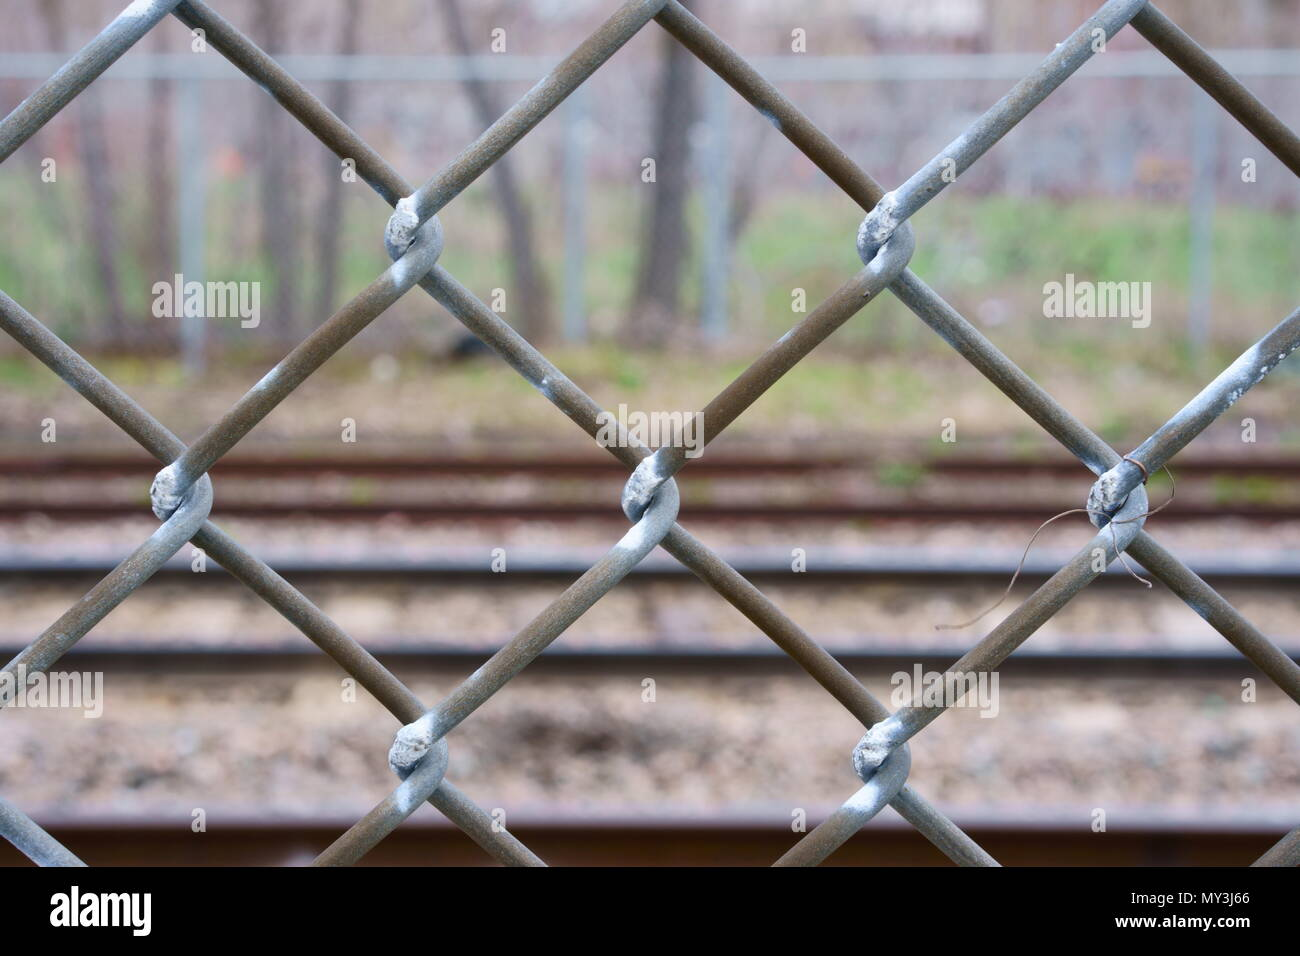 A fence along a railway track. - Stock Image